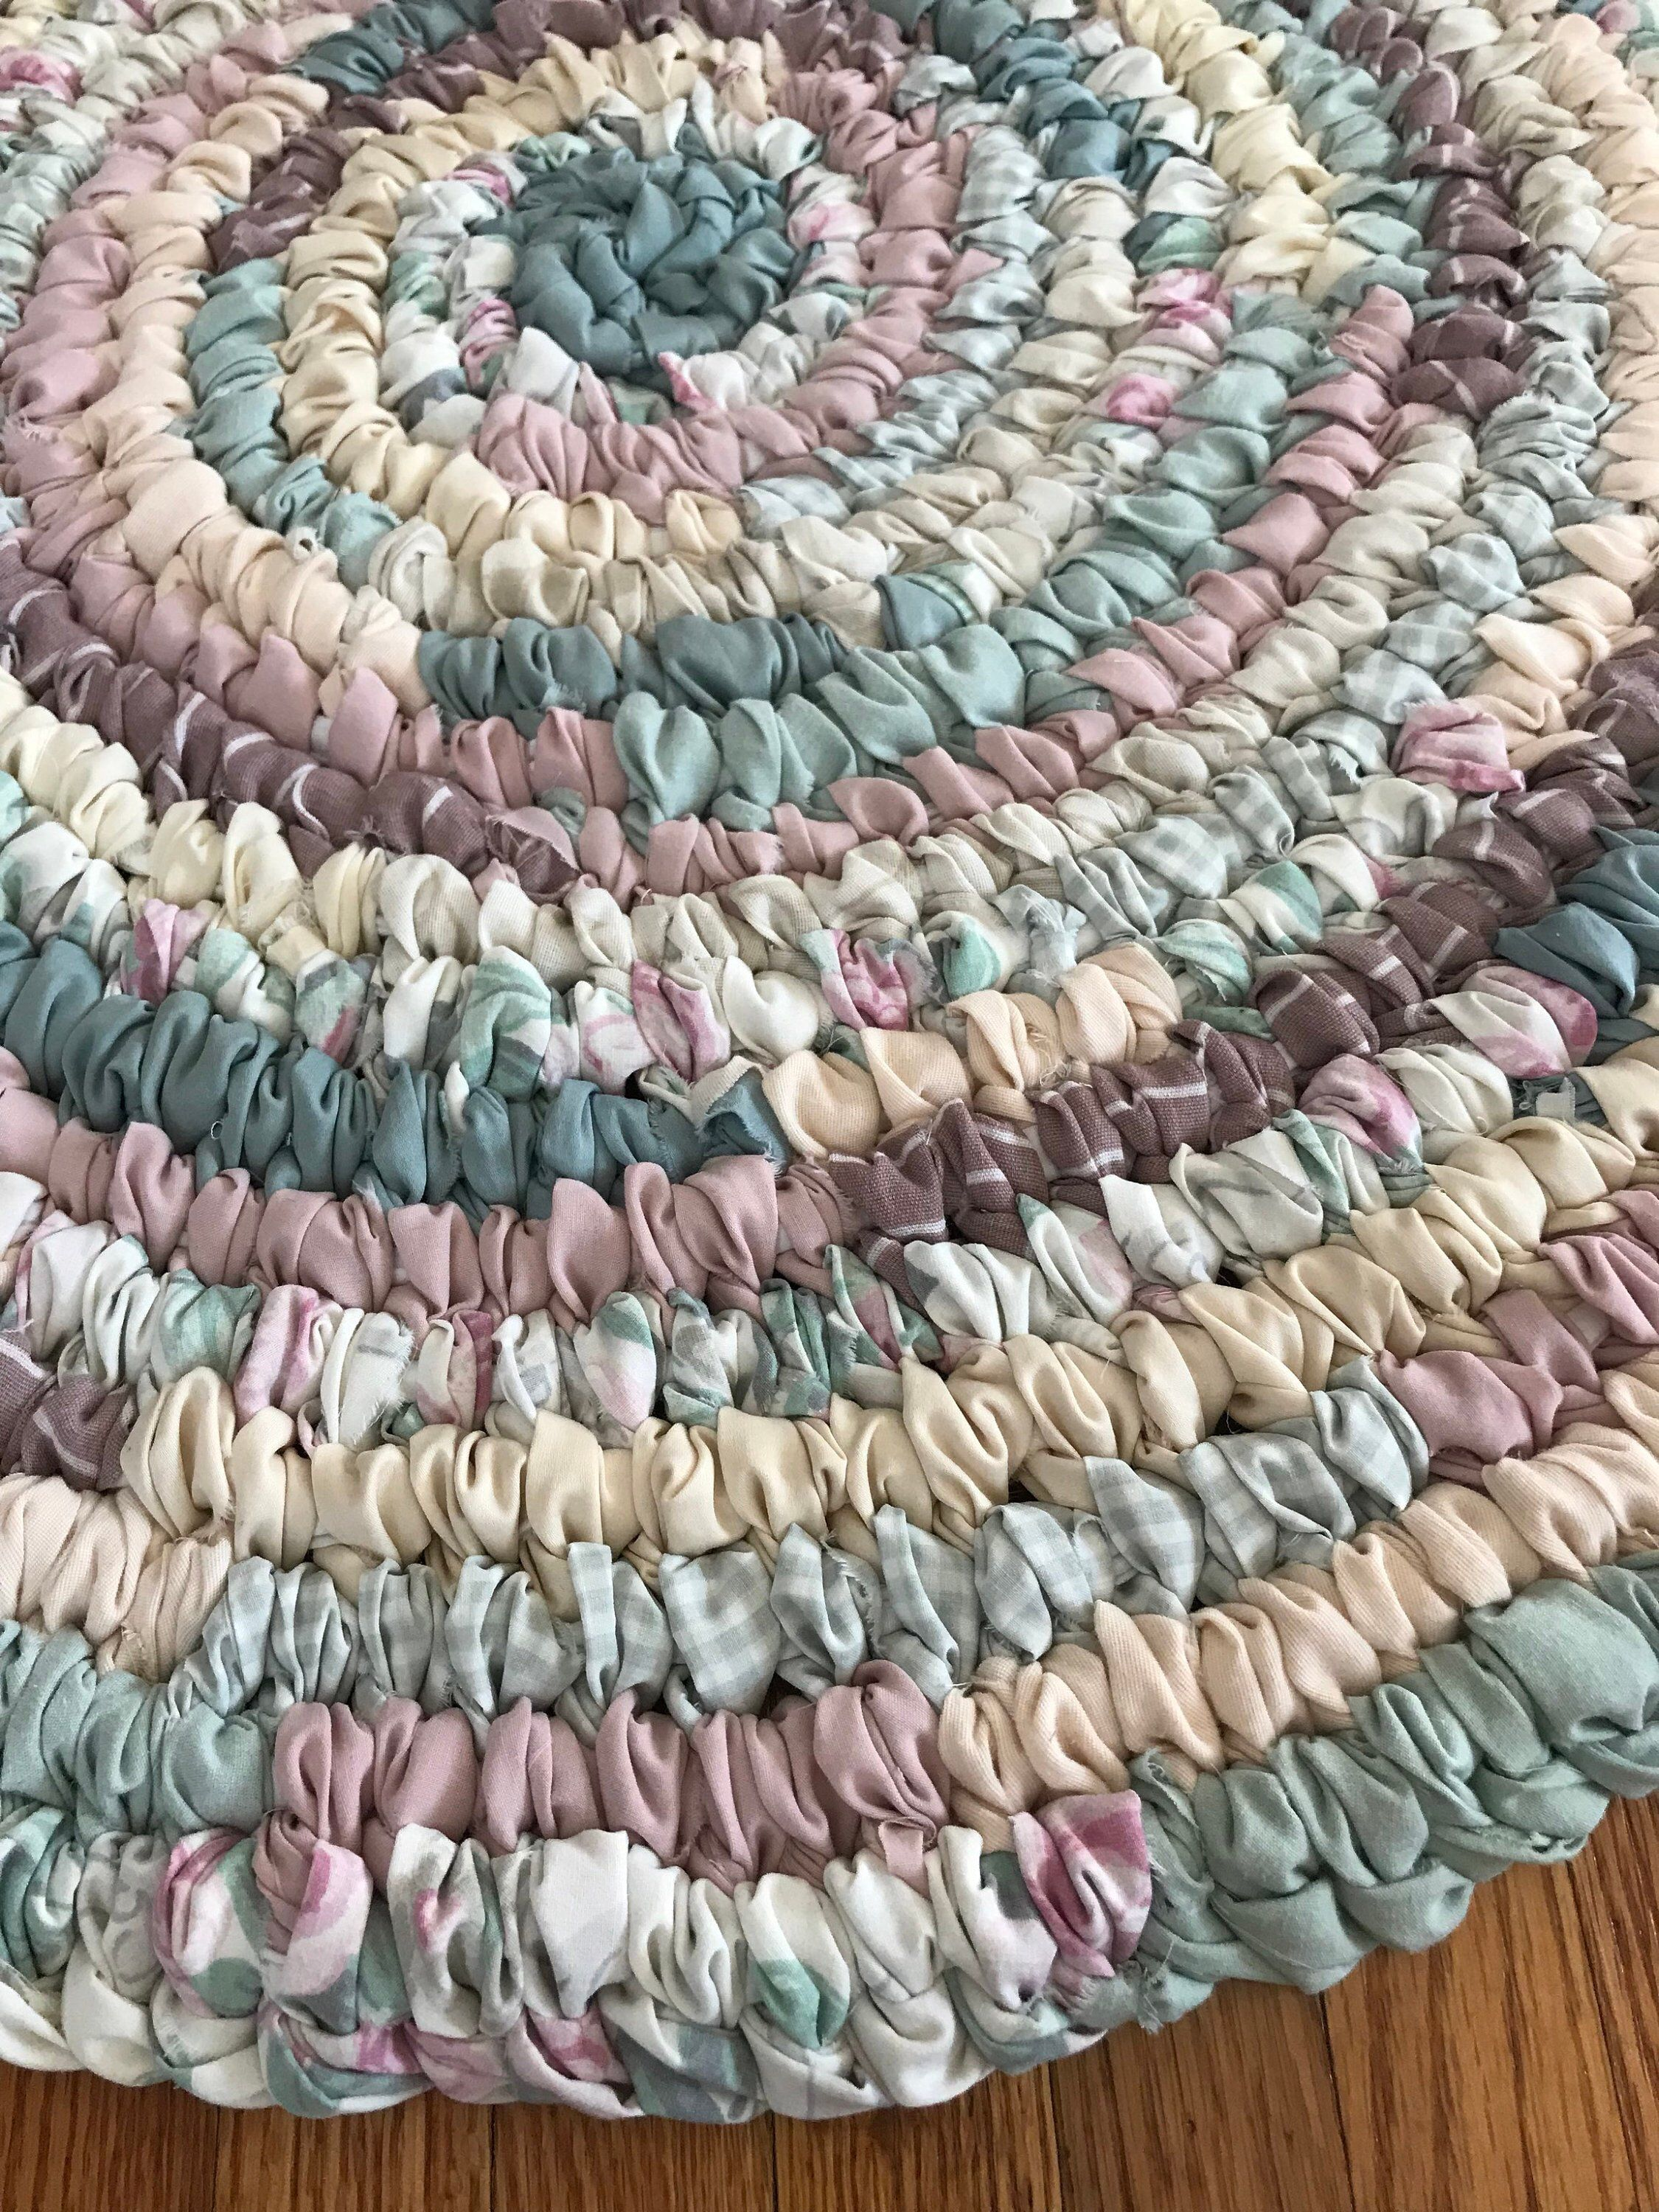 Excited To Share This Item From My Etsy Shop Handmade Rag Rug Round Rug Farmhouse Rug Cabin Rug Toothbrush Rag R Braided Rug Diy Handmade Rag Rug Rag Rug